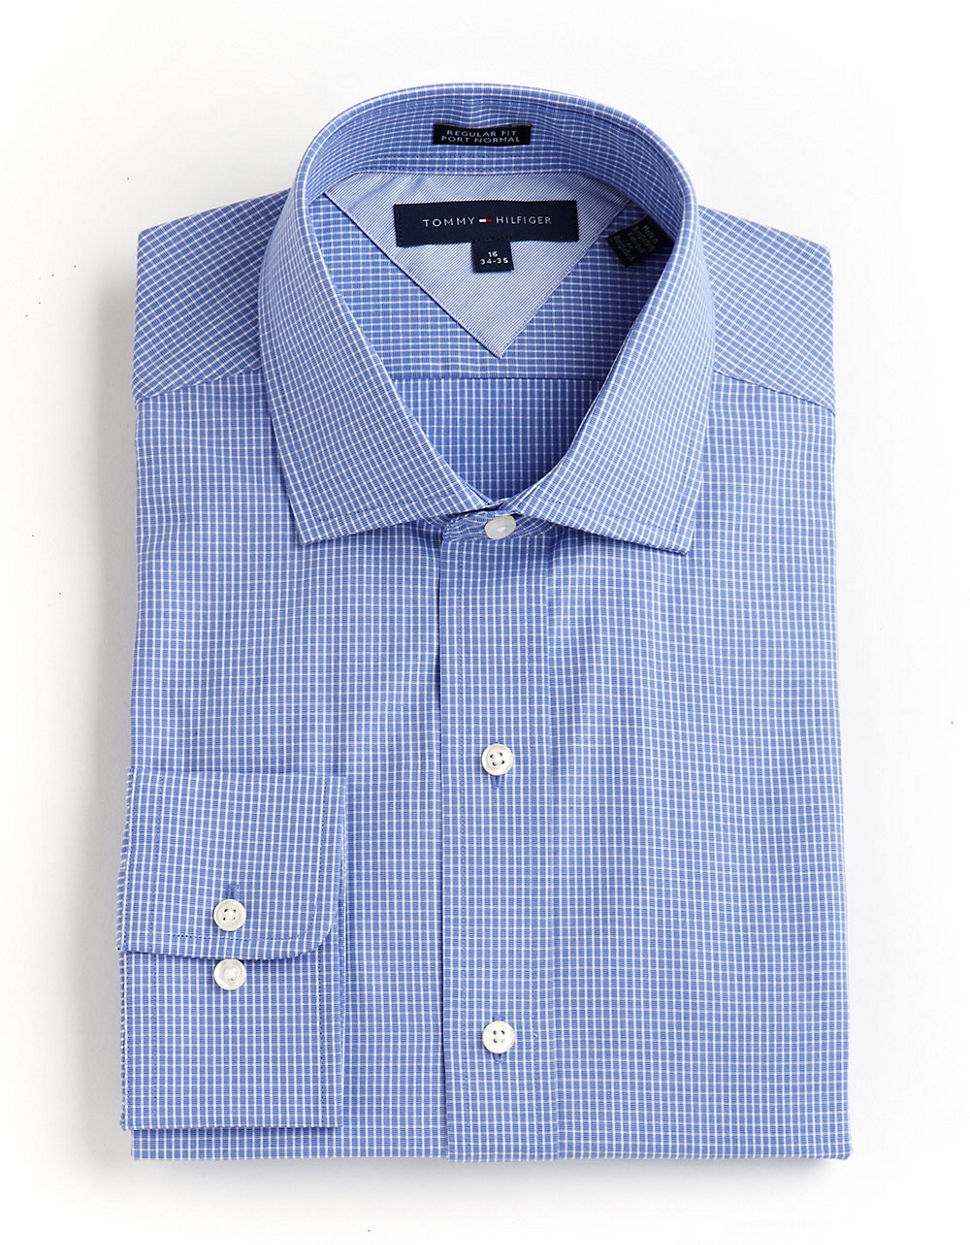 Tommy hilfiger Tommy Hilfiger Ls Regular Fit Dress Shirt blue 17  32/33